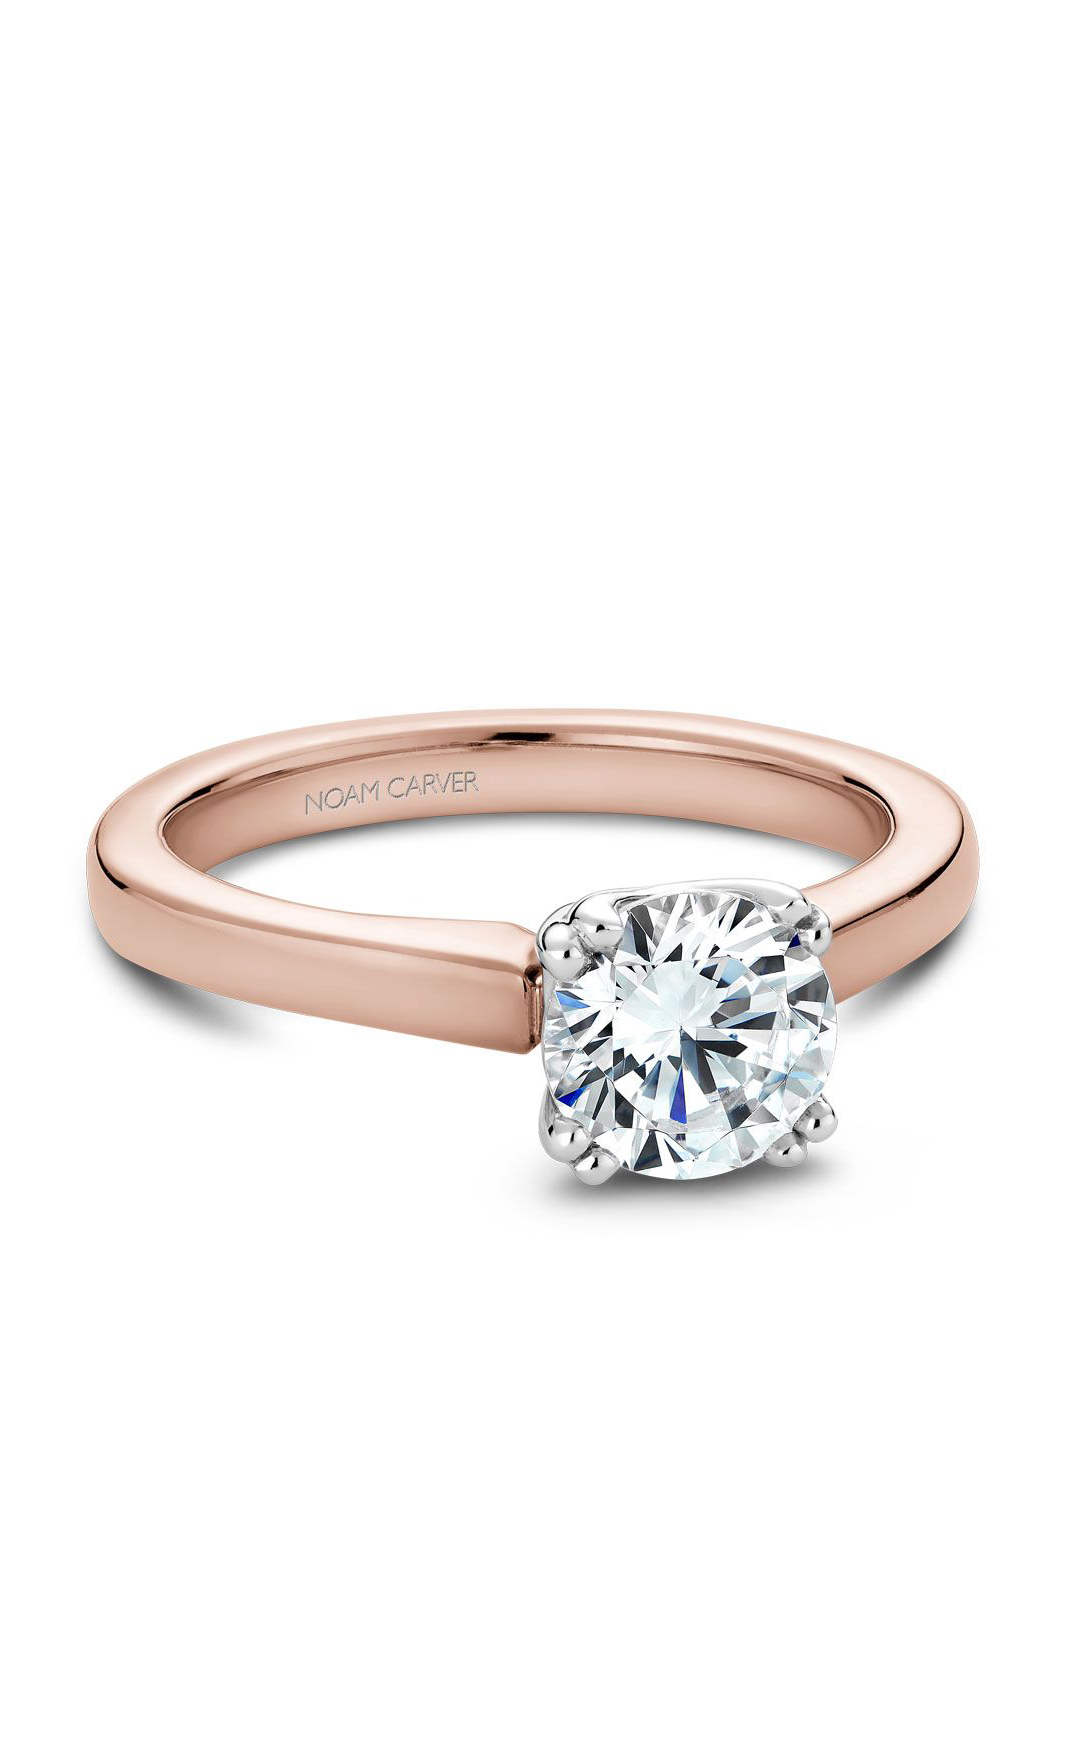 Noam Carver Classic Engagement Ring B001-02RWA product image